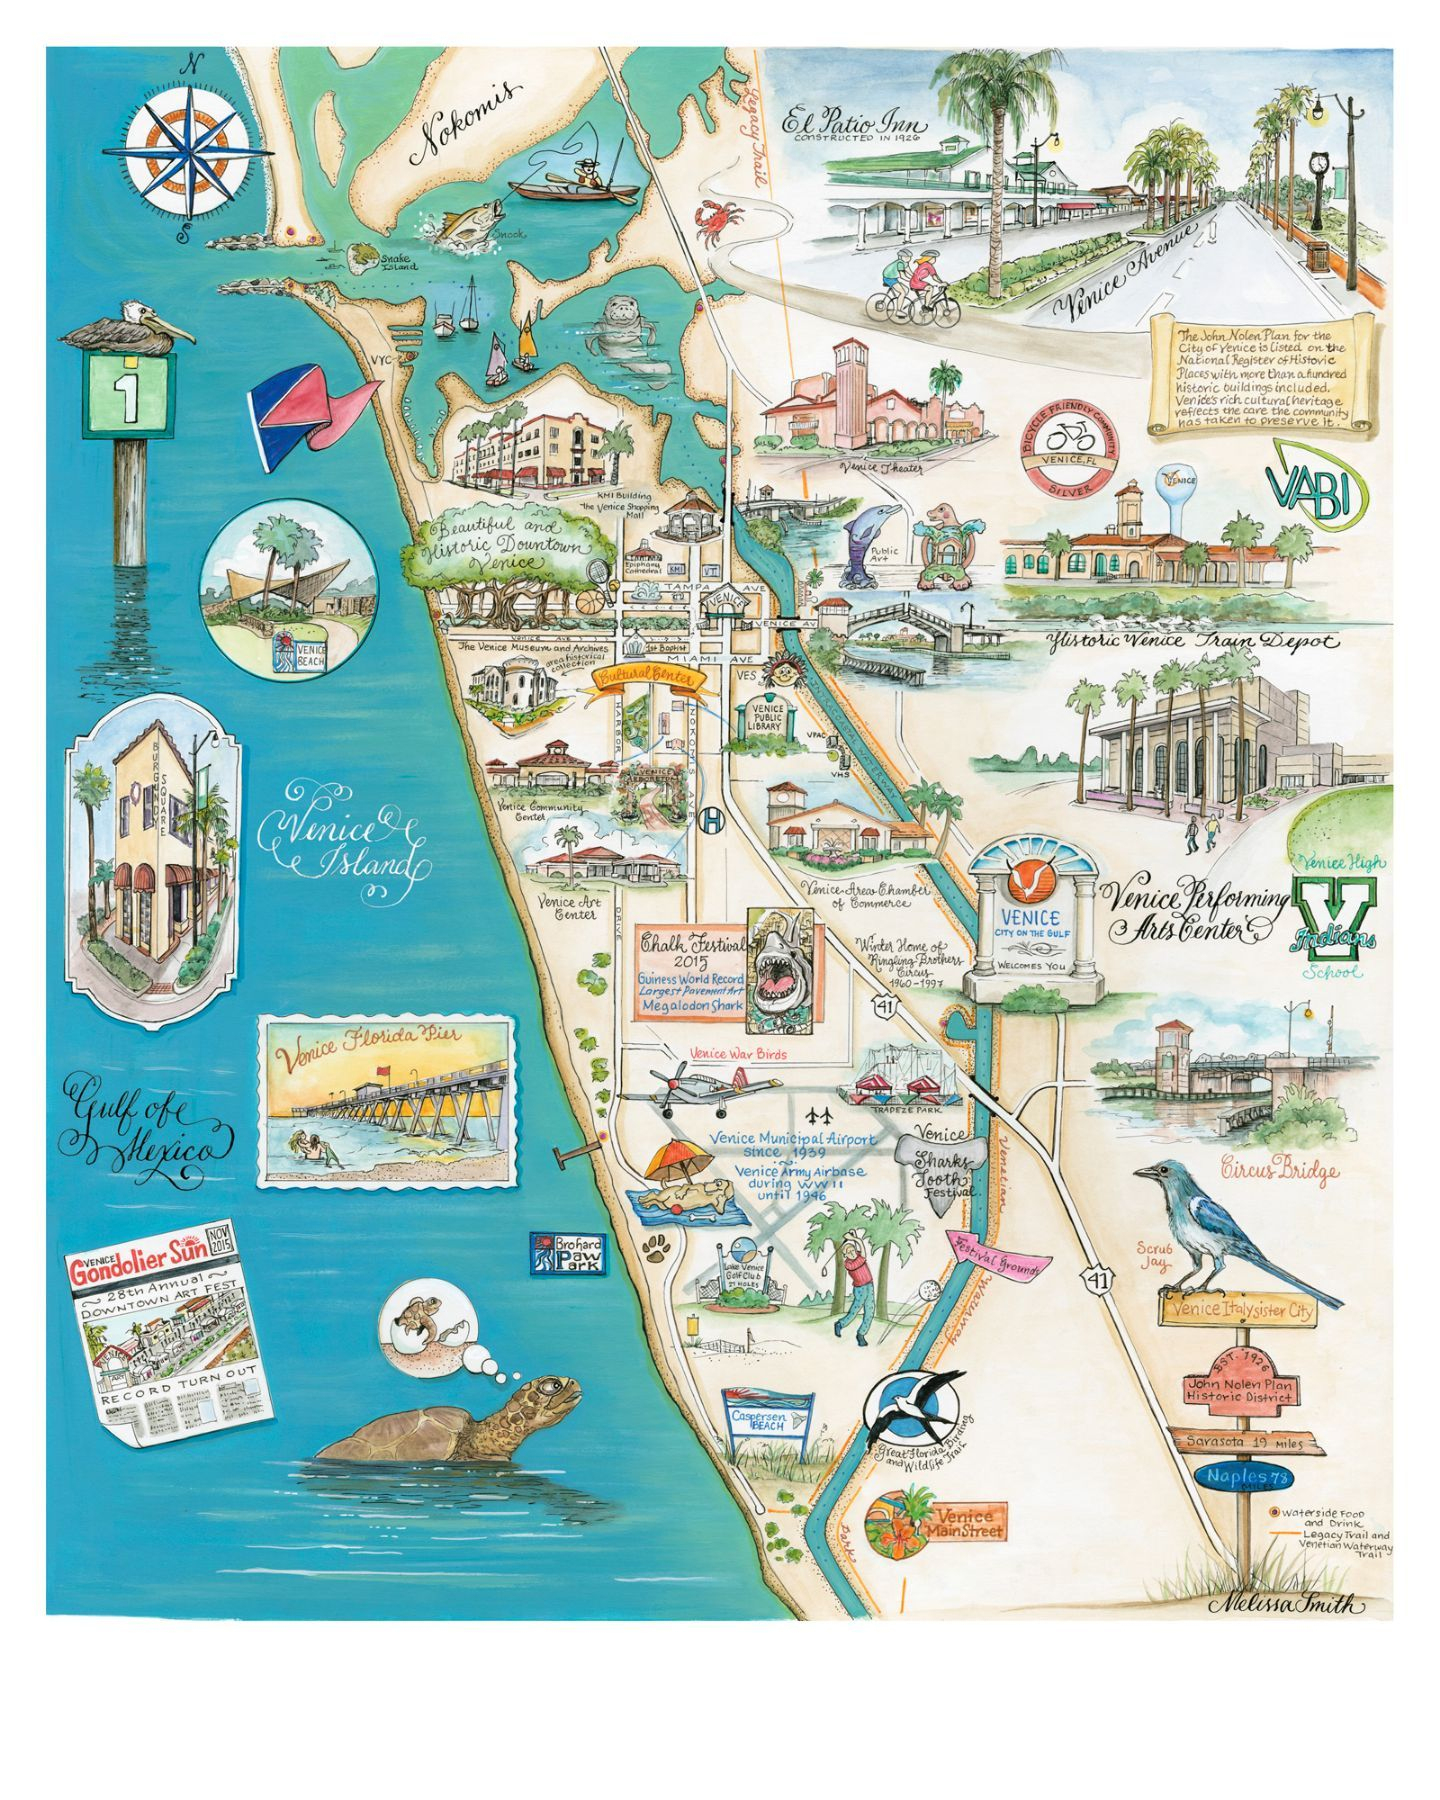 Venice, Florida Map - This Map Is One Of The Prettiest Maps I Have - San Marcos Island Florida Map